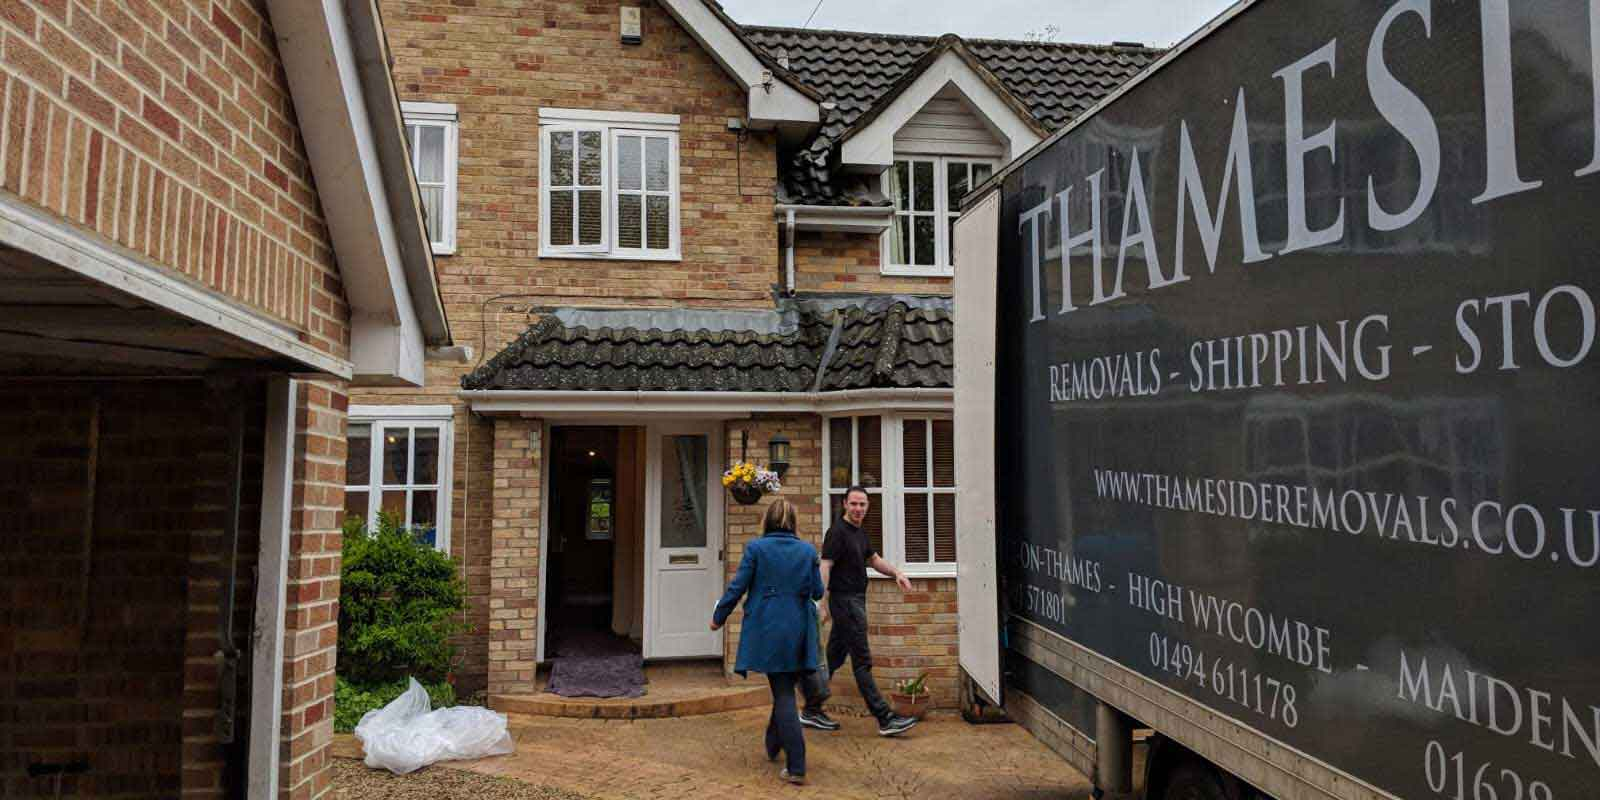 Thameside Removals domestic and commercial removals